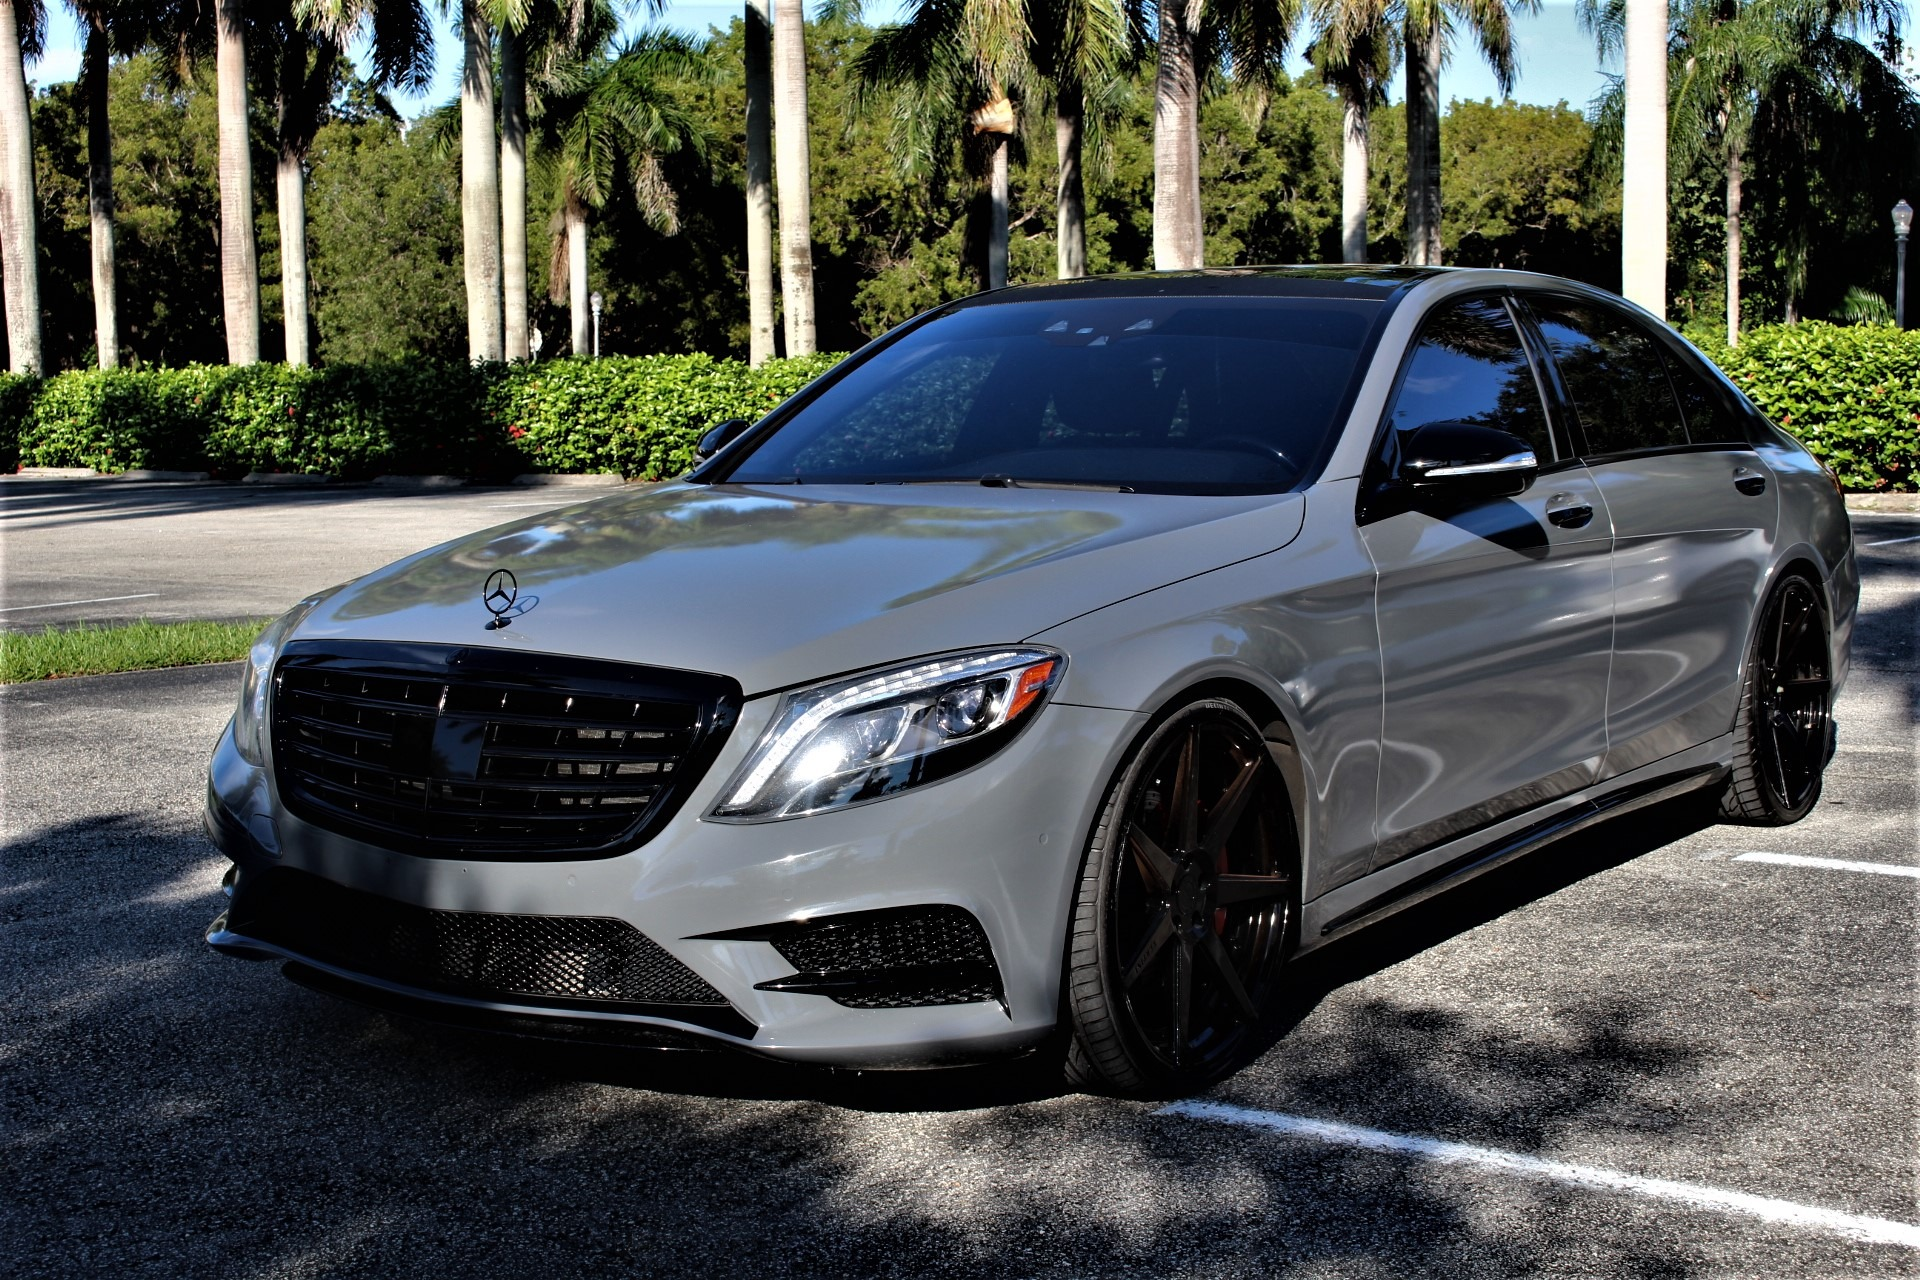 Used 2014 Mercedes-Benz S-Class S 550 for sale Sold at The Gables Sports Cars in Miami FL 33146 3